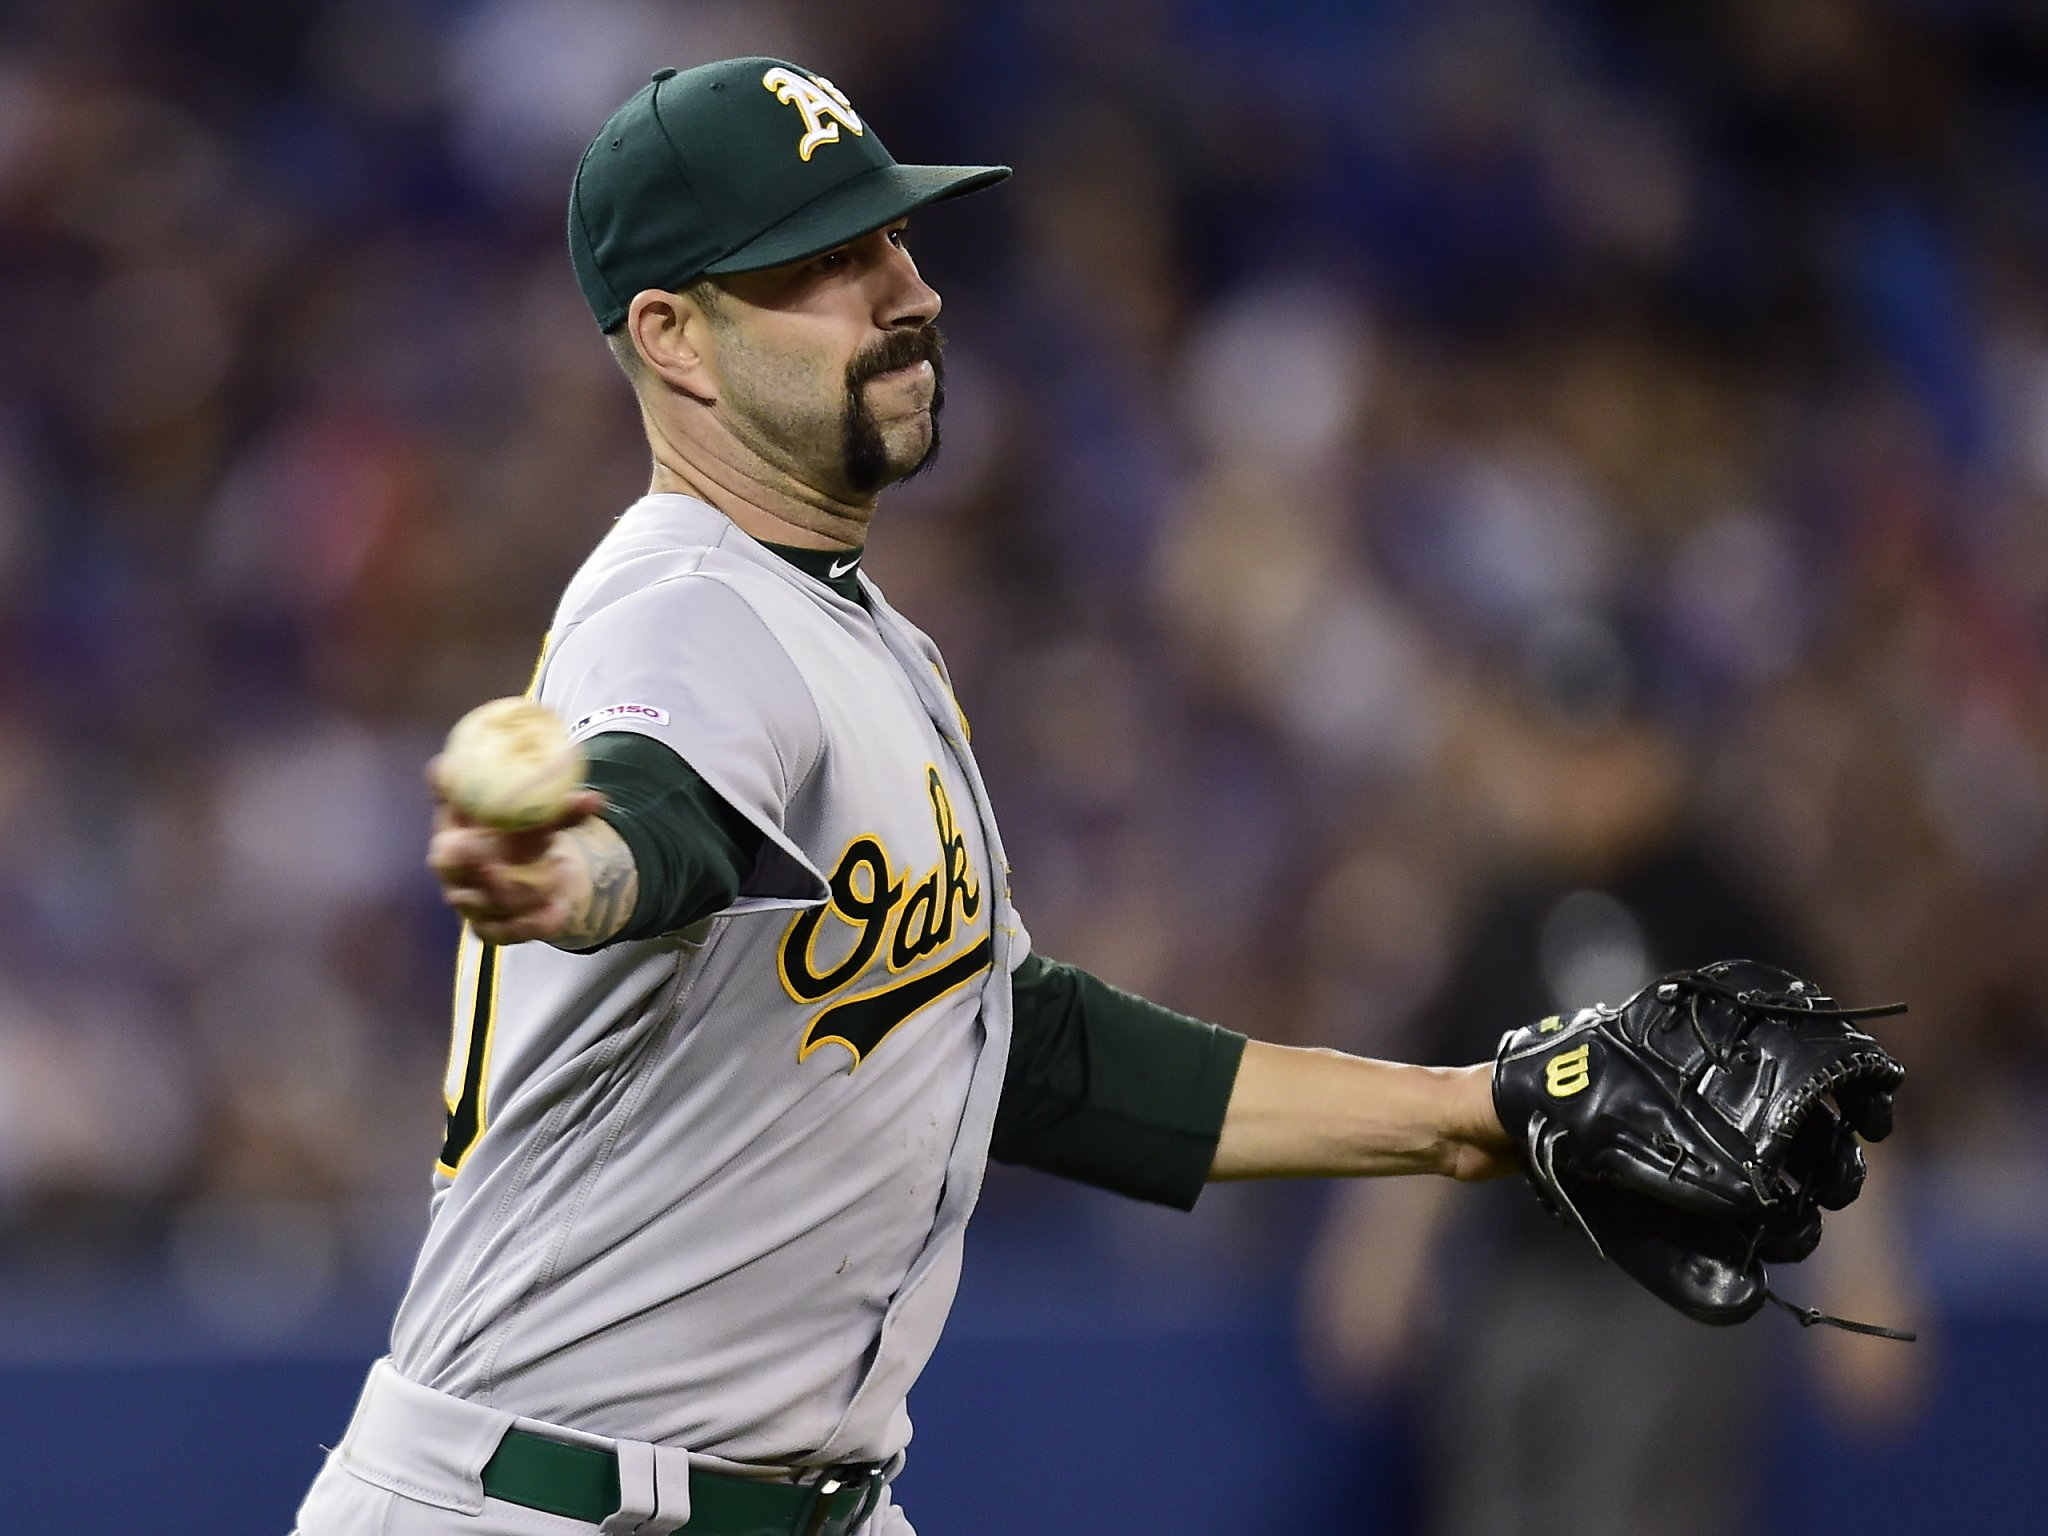 A's right-hander Mike Fiers turns in good start, but ...